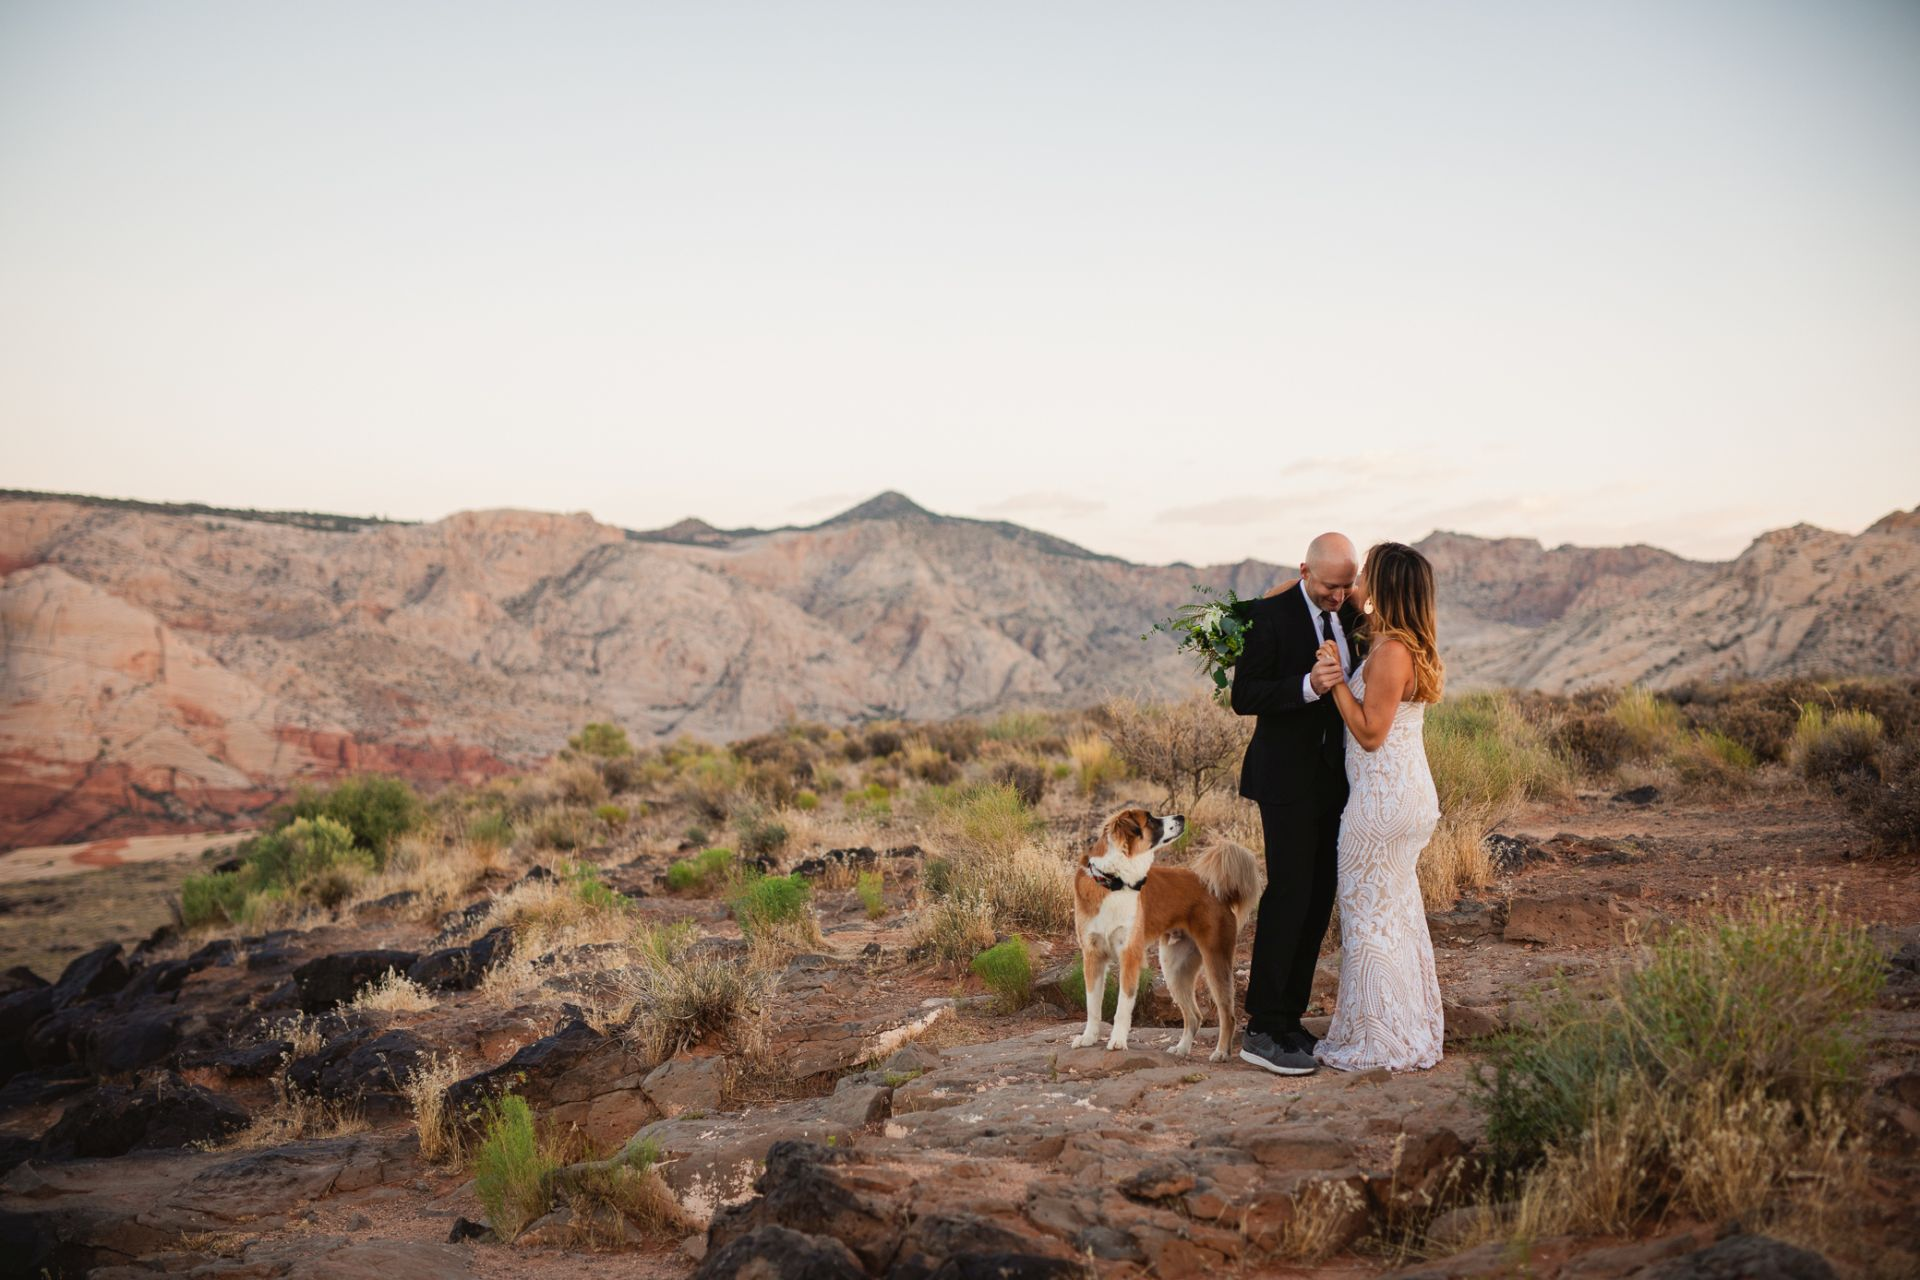 hiking elopement utah desert - bride and groom dancing in the desert